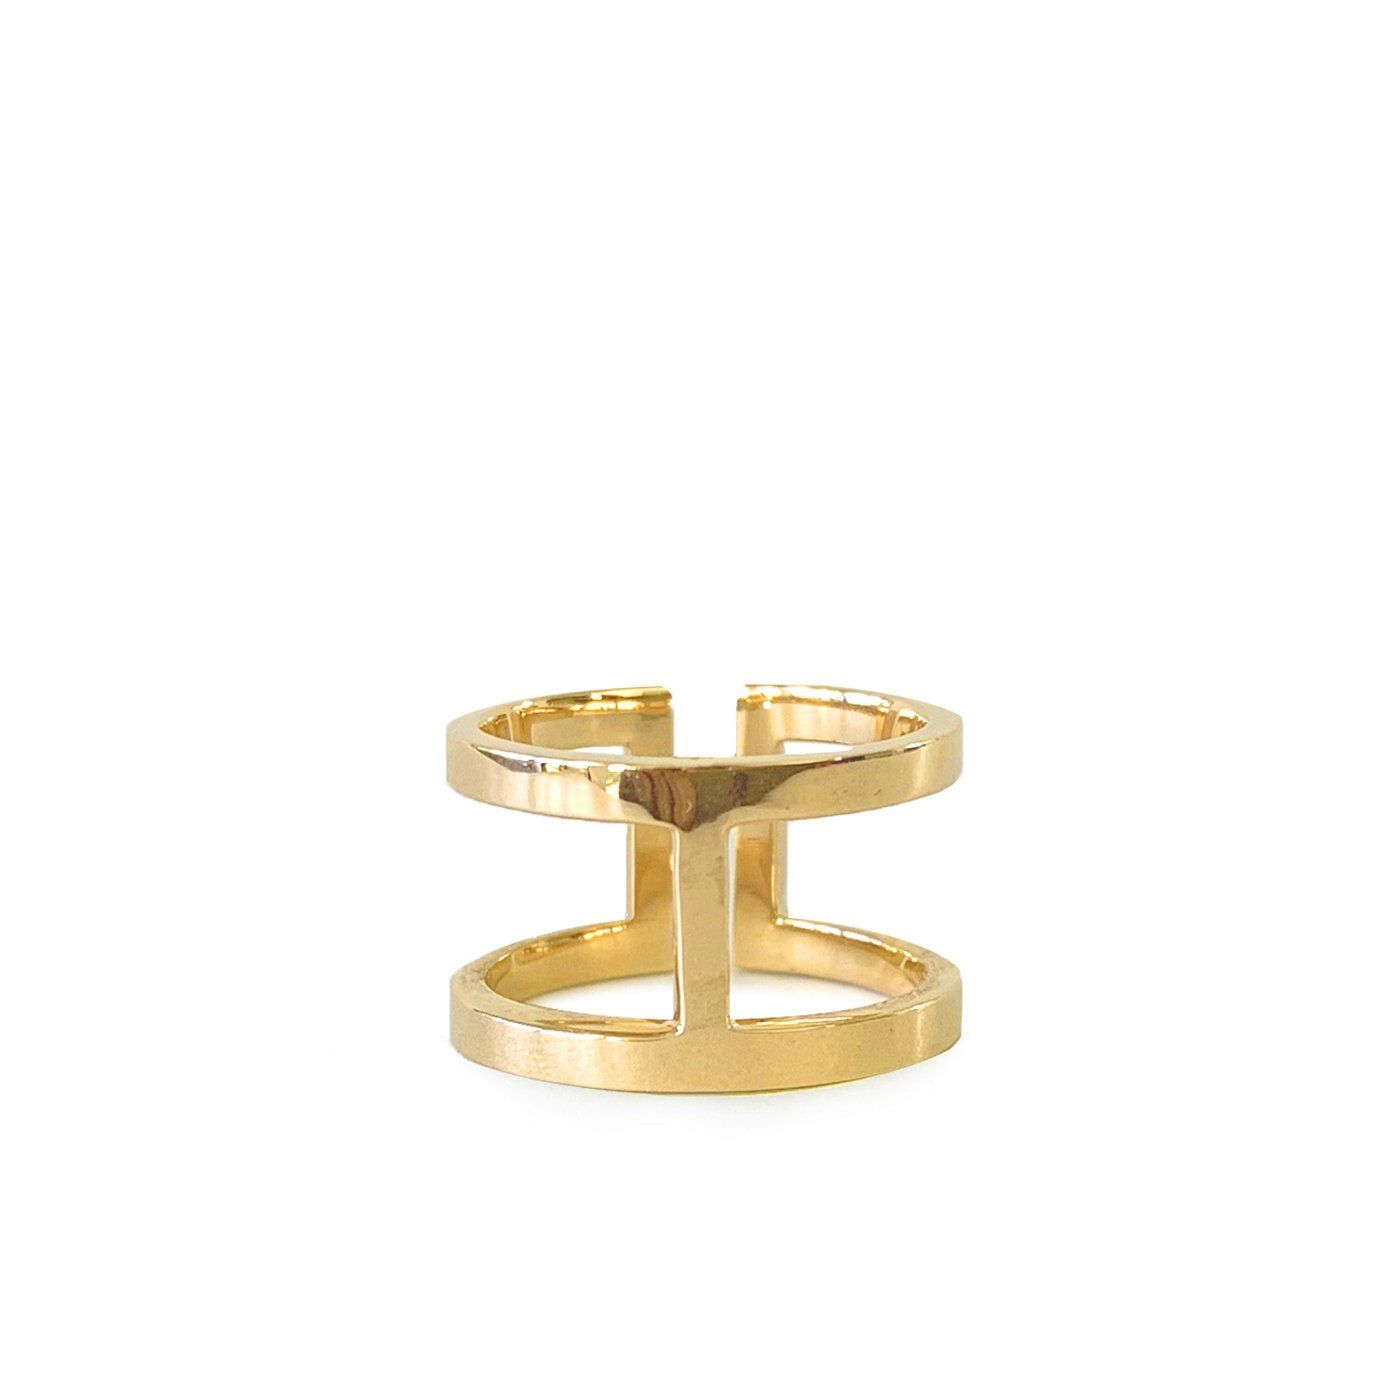 Celine ring yellow gold ZADEH NY